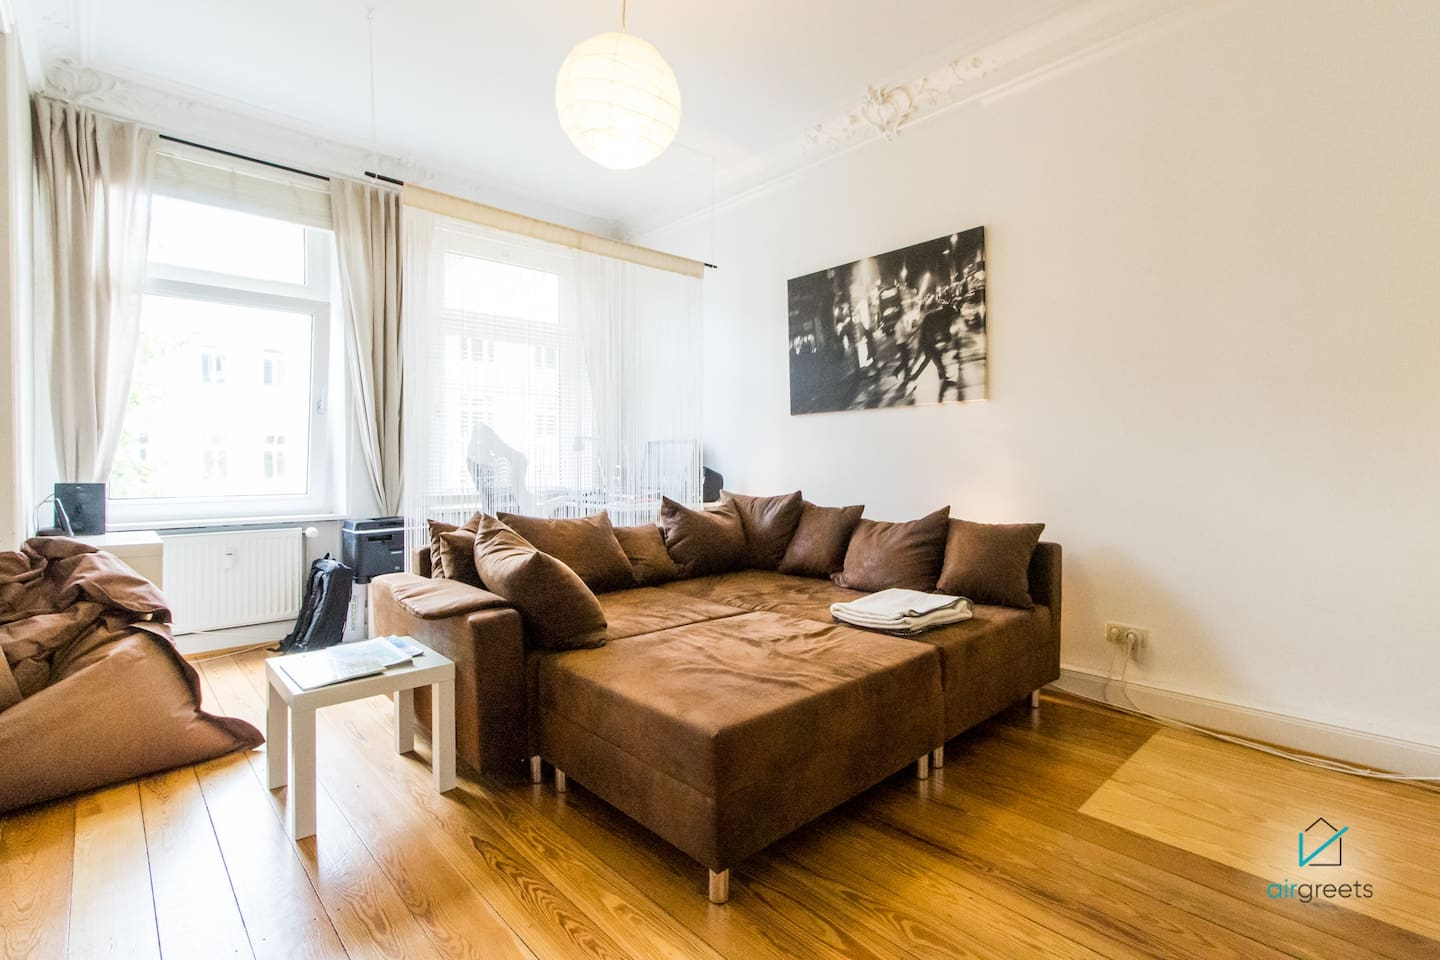 Cozy, light-filled apartment, ready for your stay!